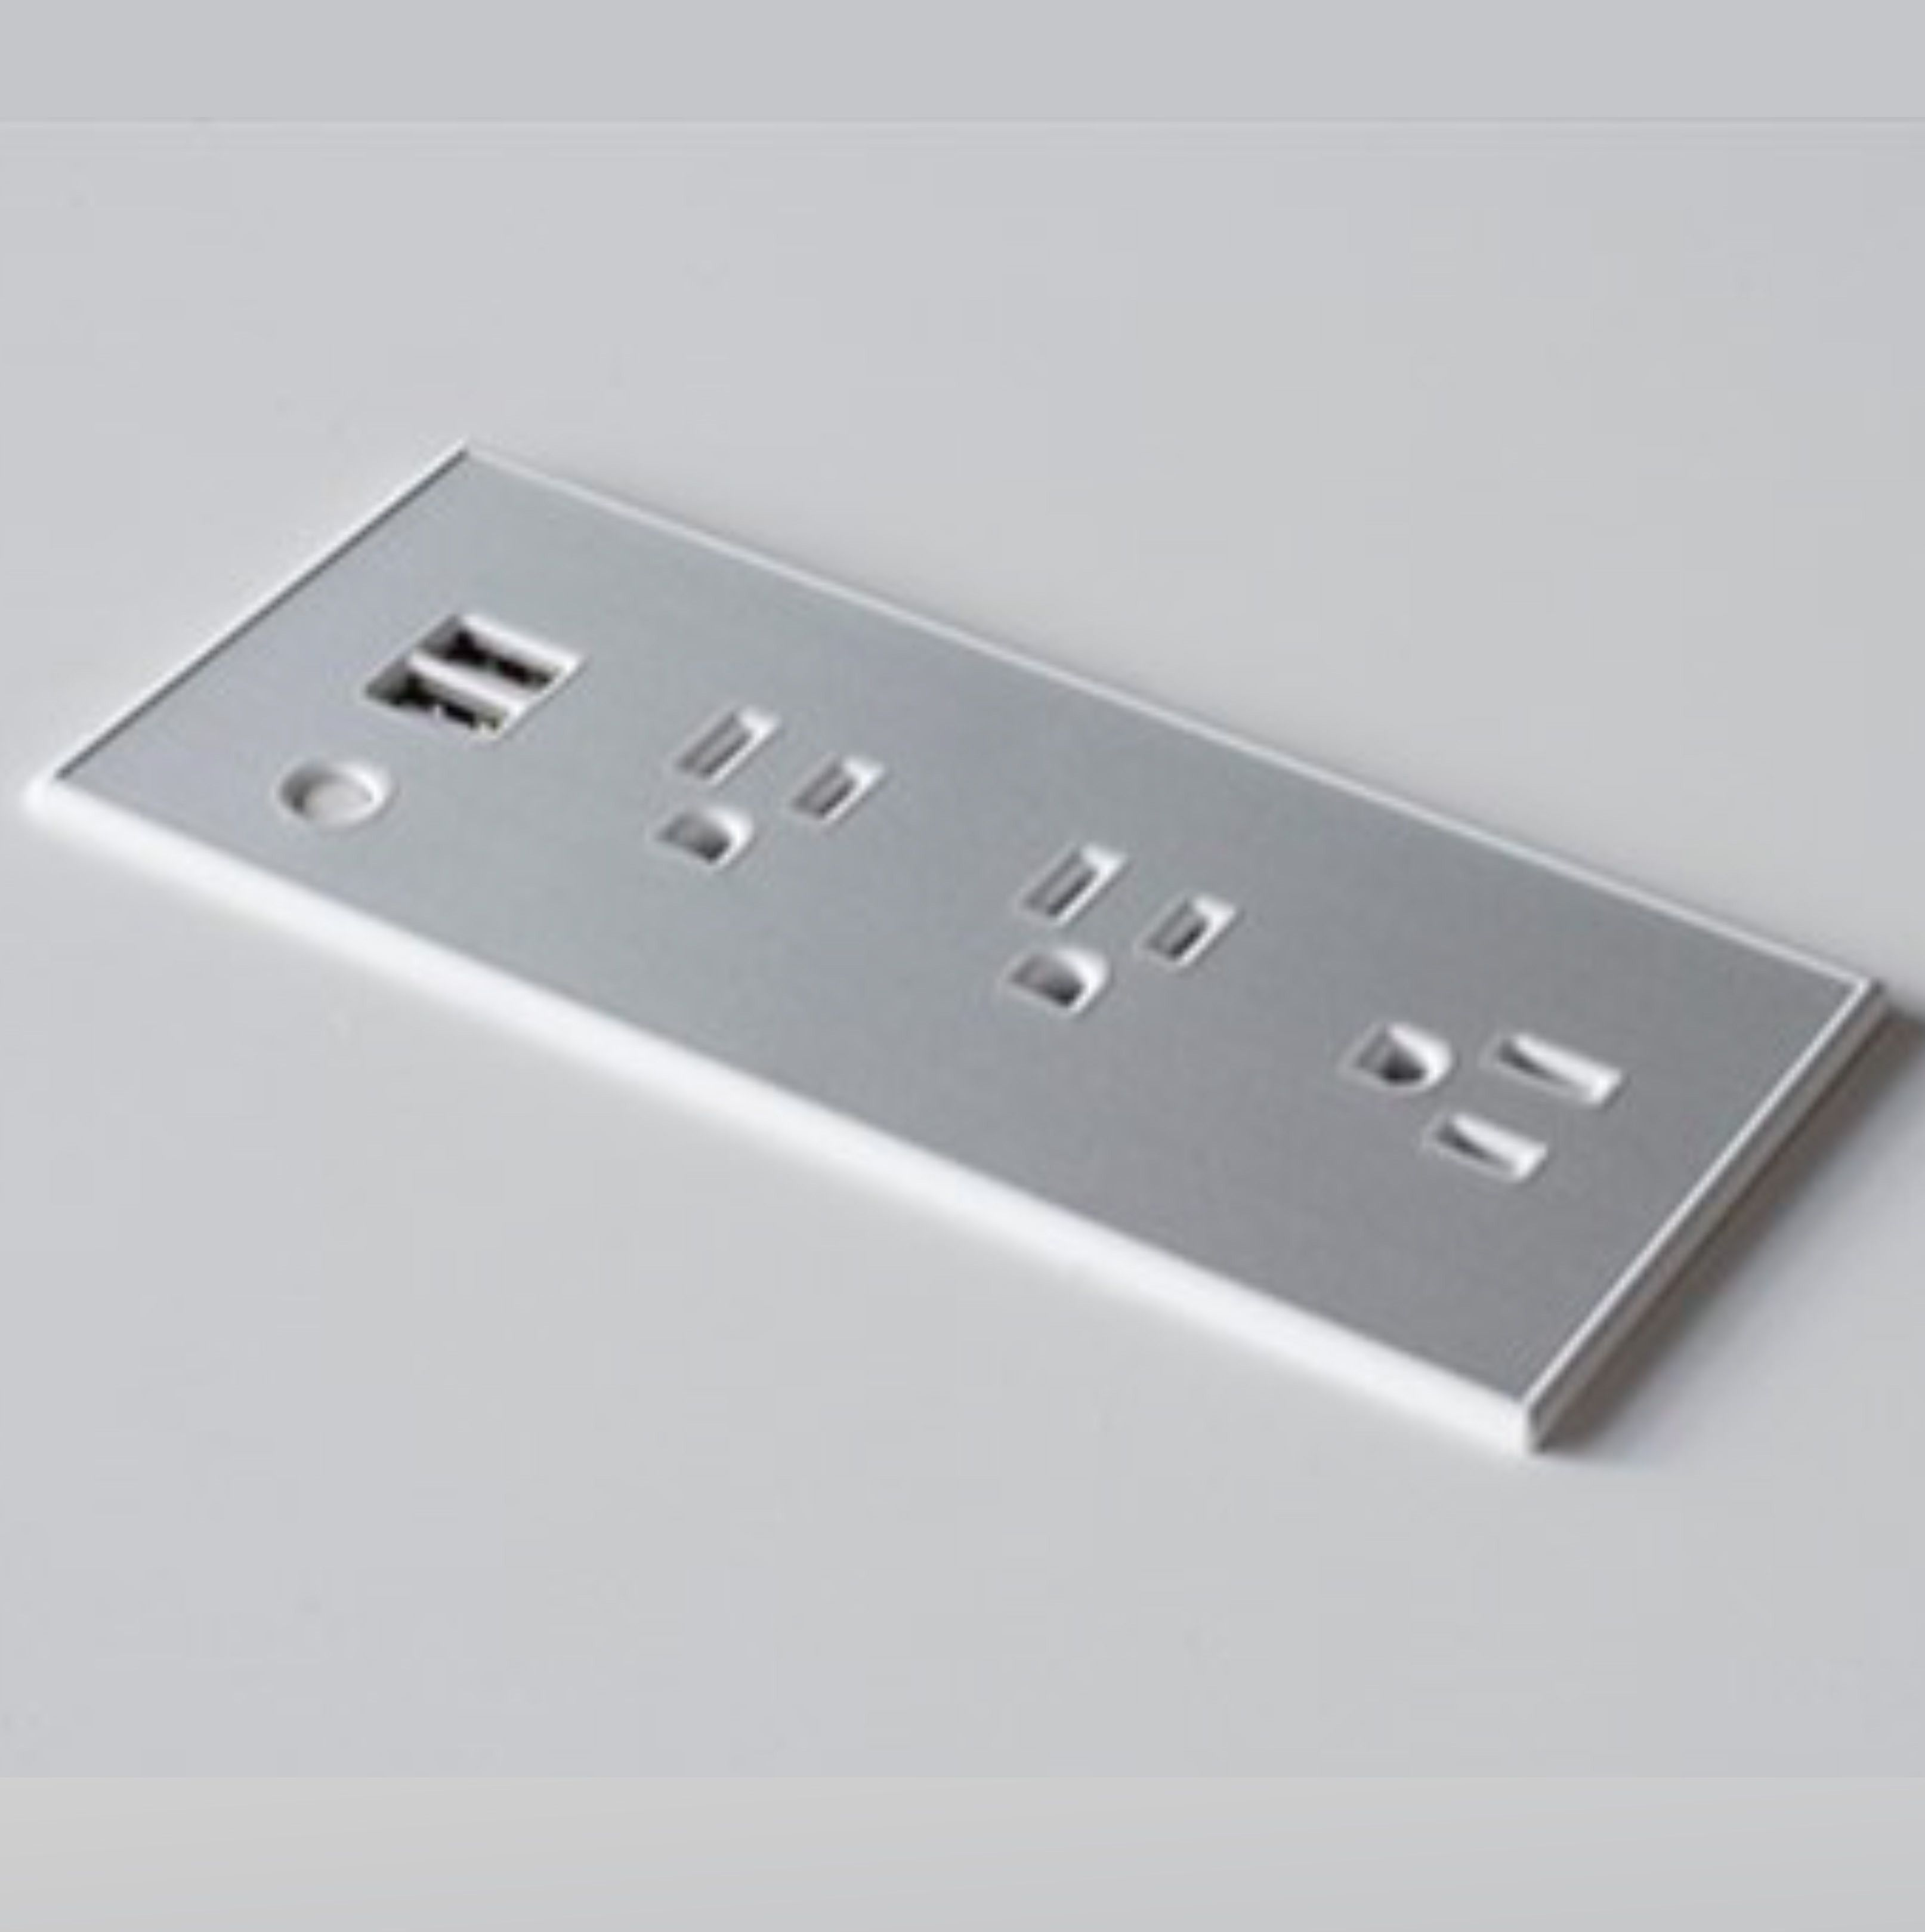 Flush Mount Power Strip With Outlets And Usb Ports Flush Mount Usb Outlet Power Strip